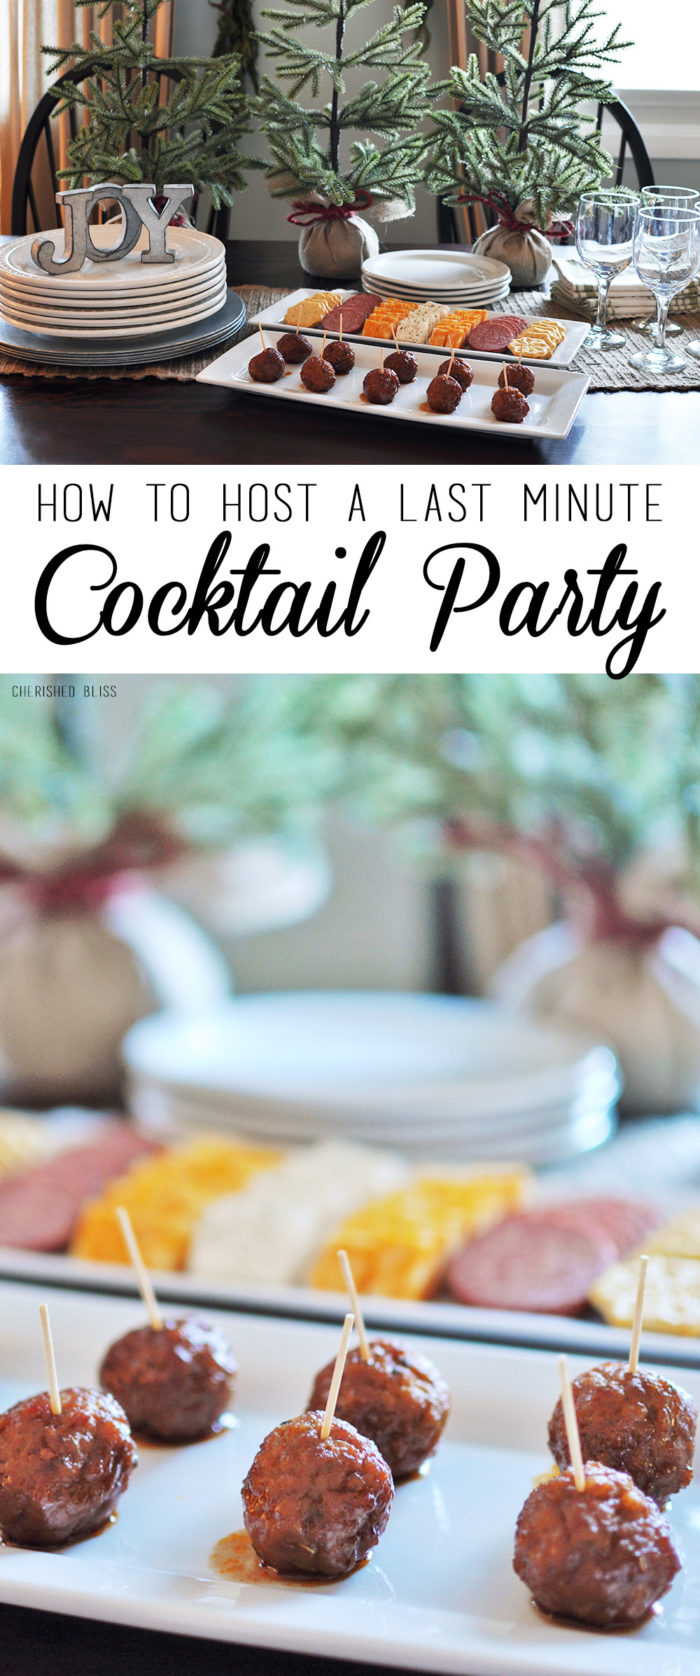 How to Host a Last Minute Cocktail Party + An easy 3 Ingredient Meatball Recipe